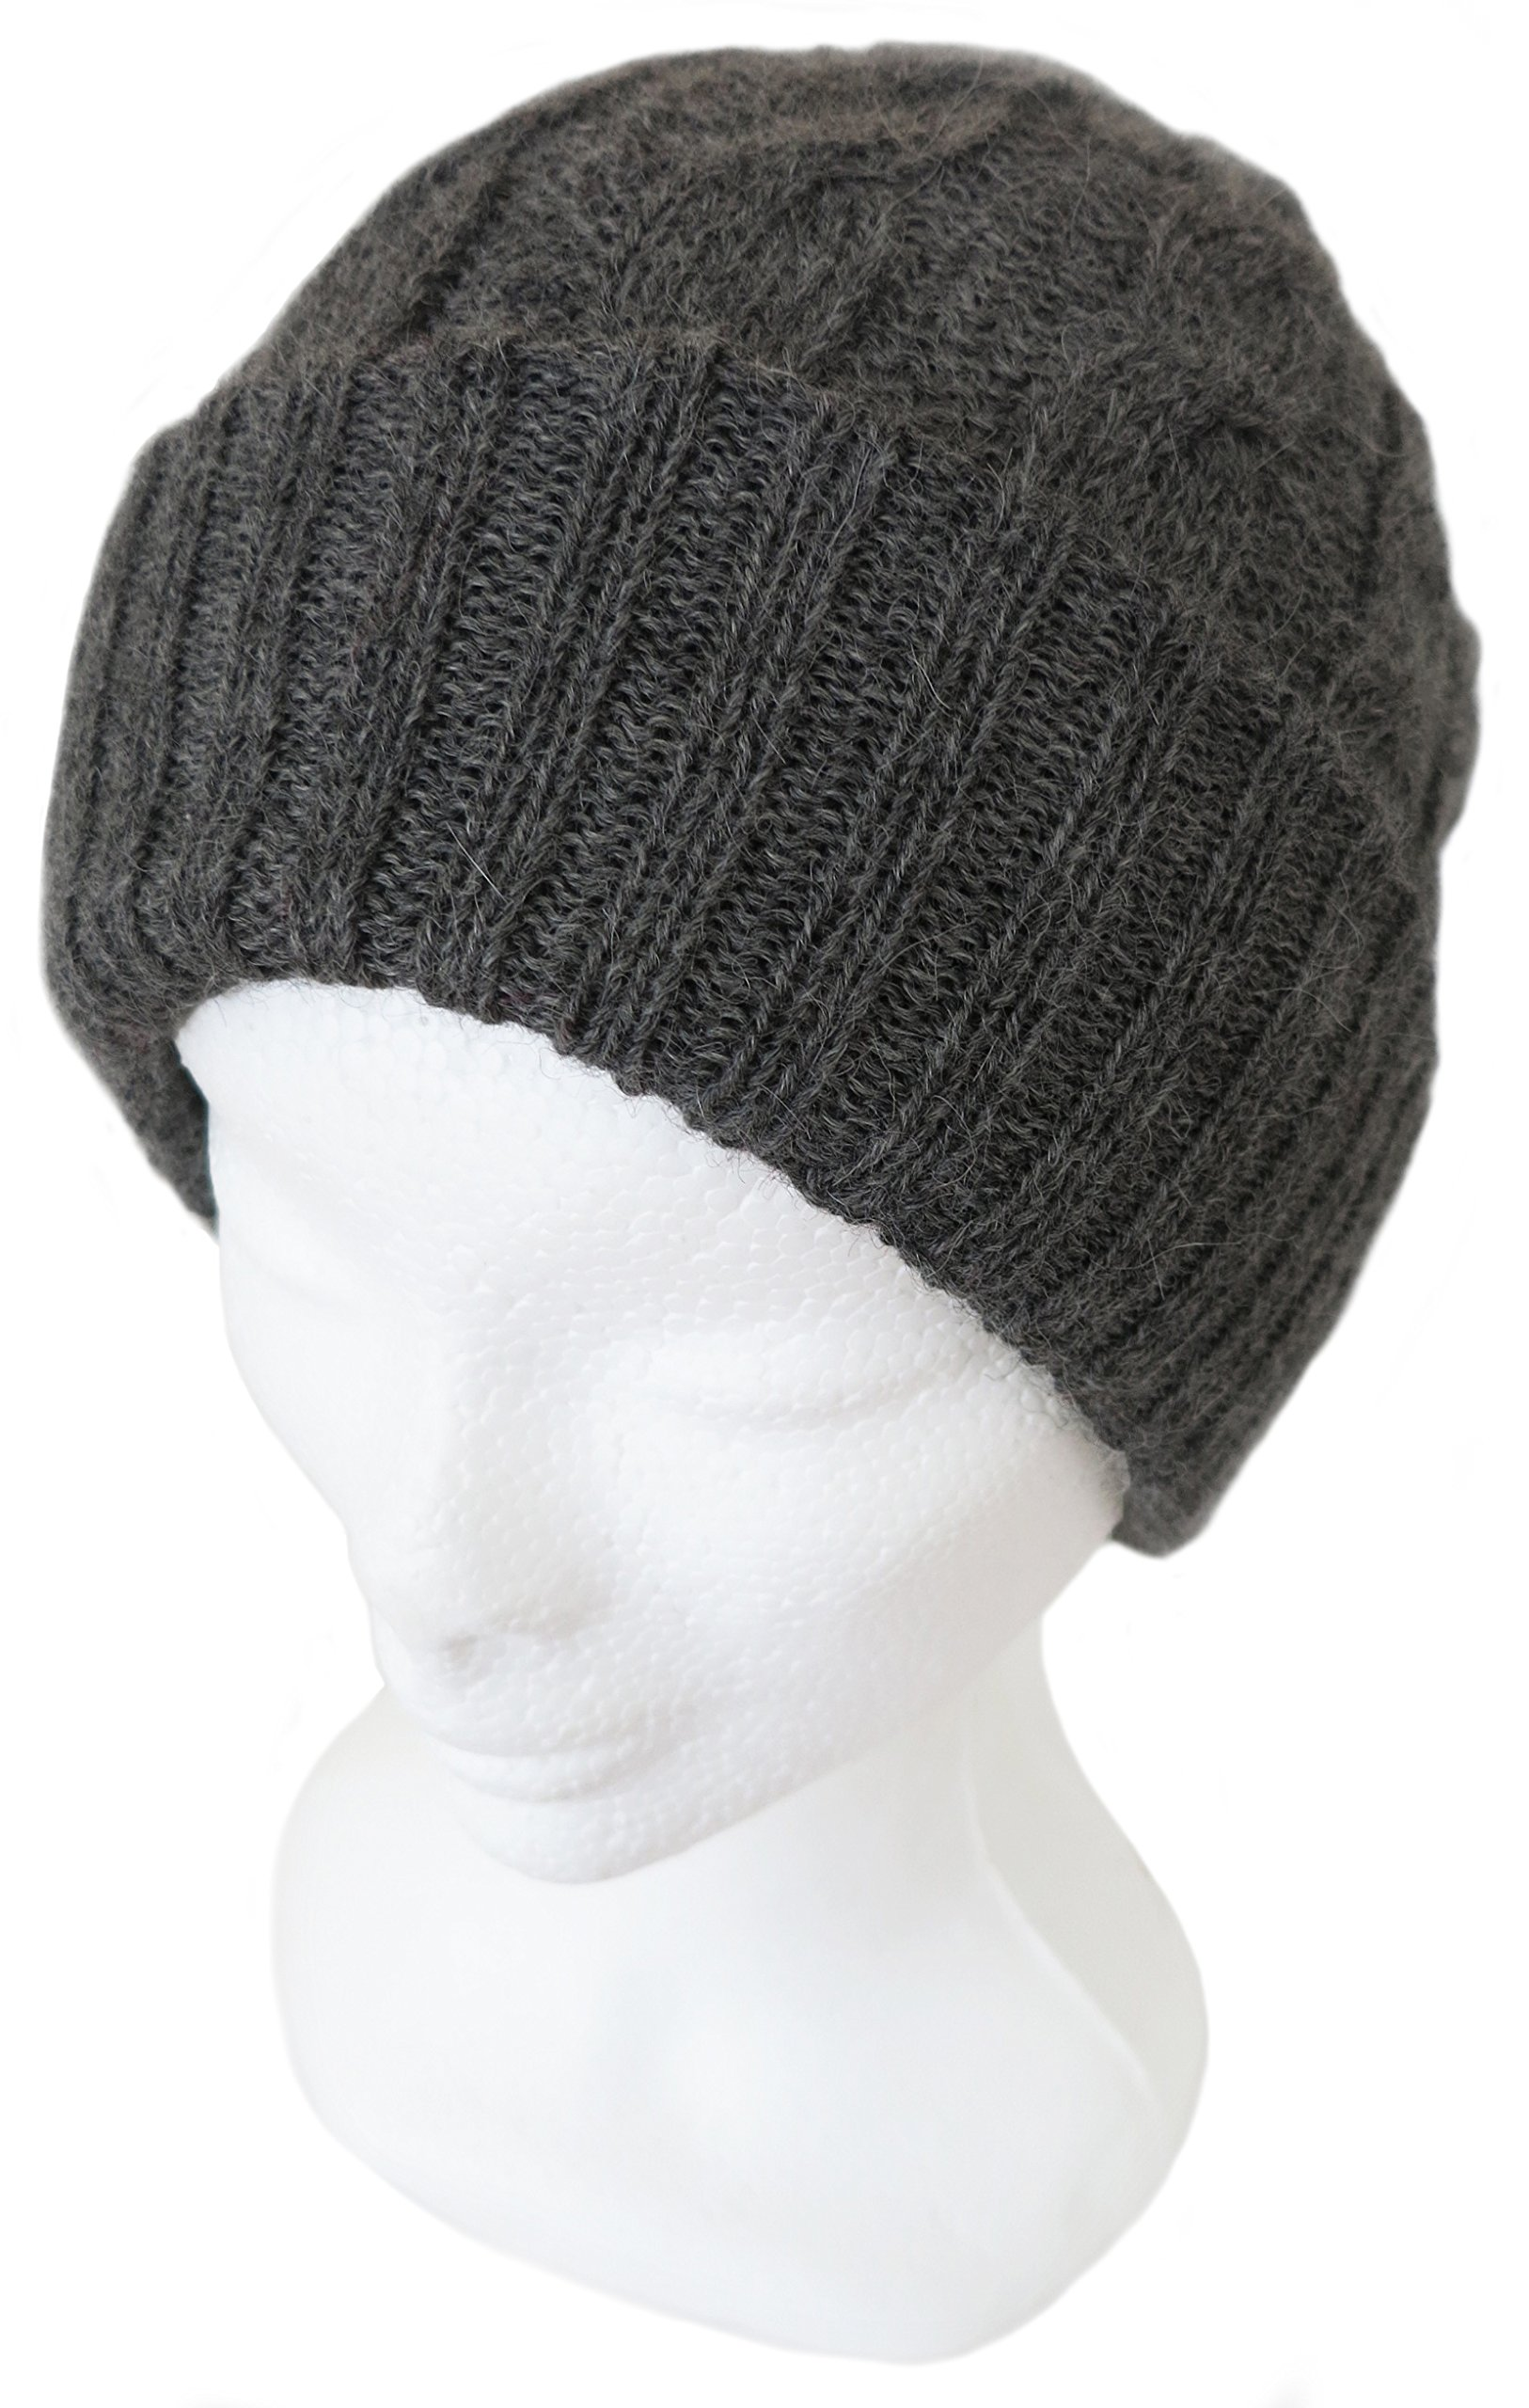 Custom Made In any Color - Pure Alpaca Cable Design Beret Hat - Charcoal by Patricia Avenue